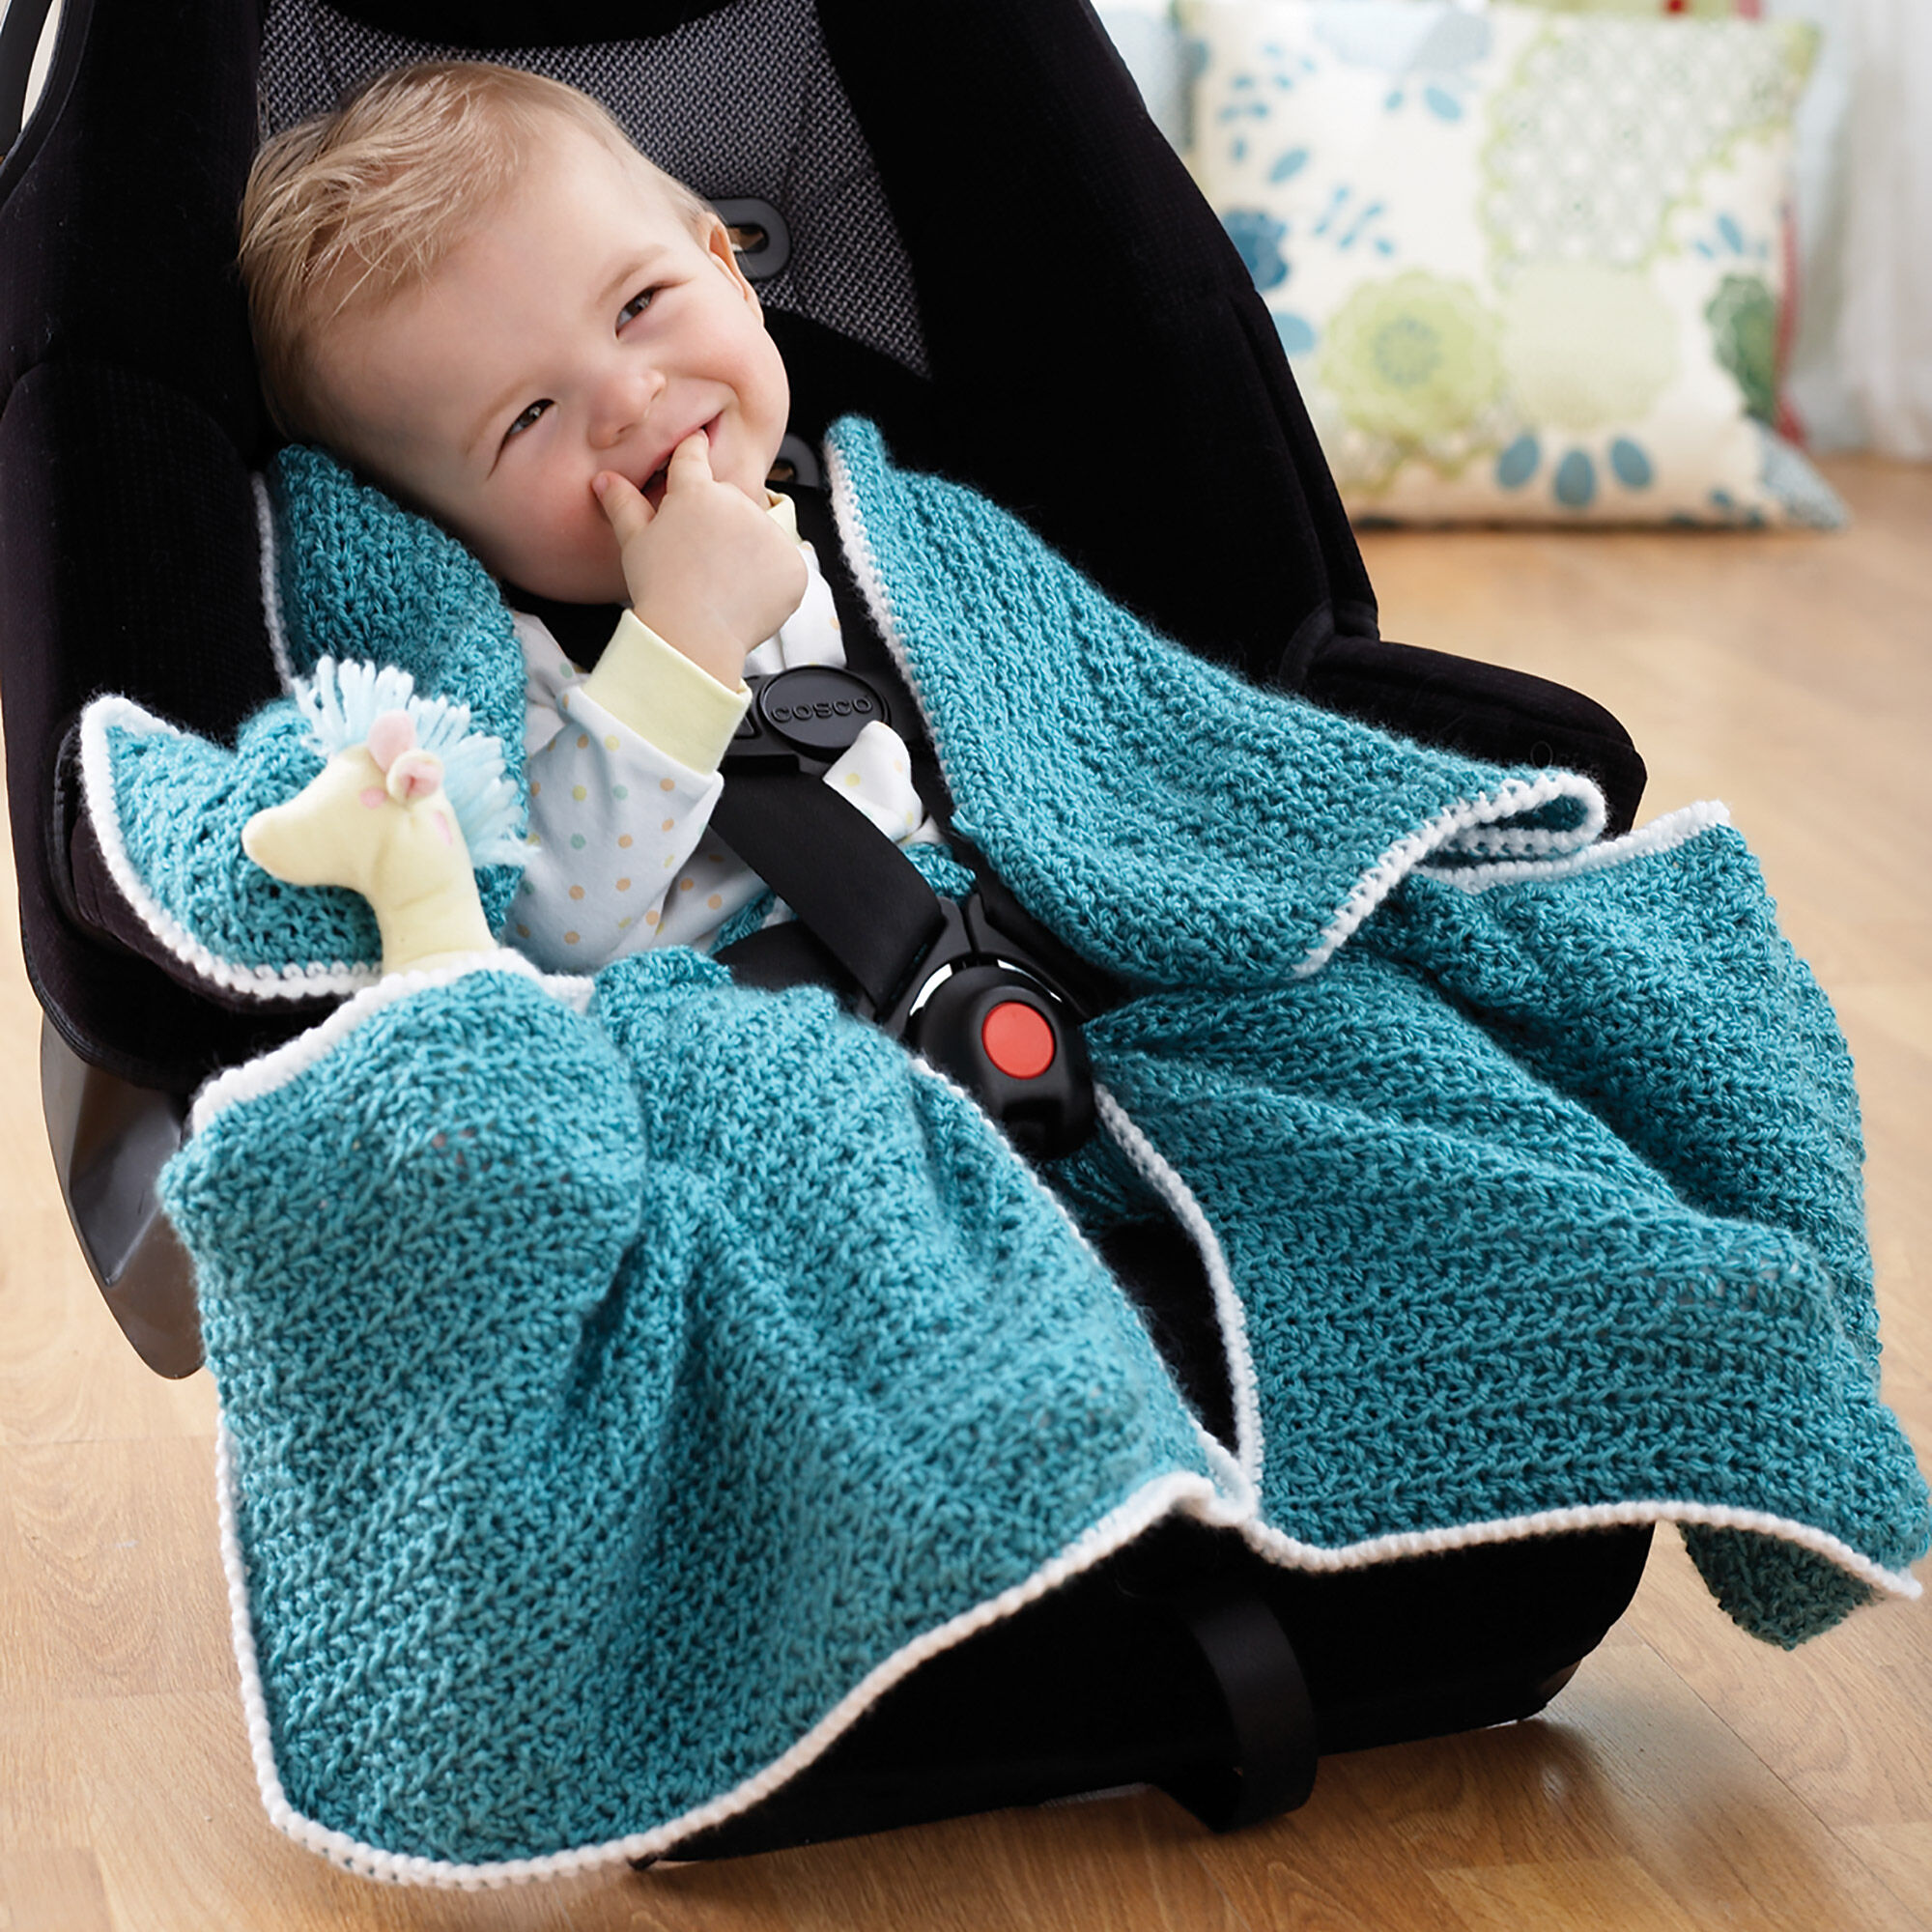 Bernat Car Seat Blanket | Yarnspirations